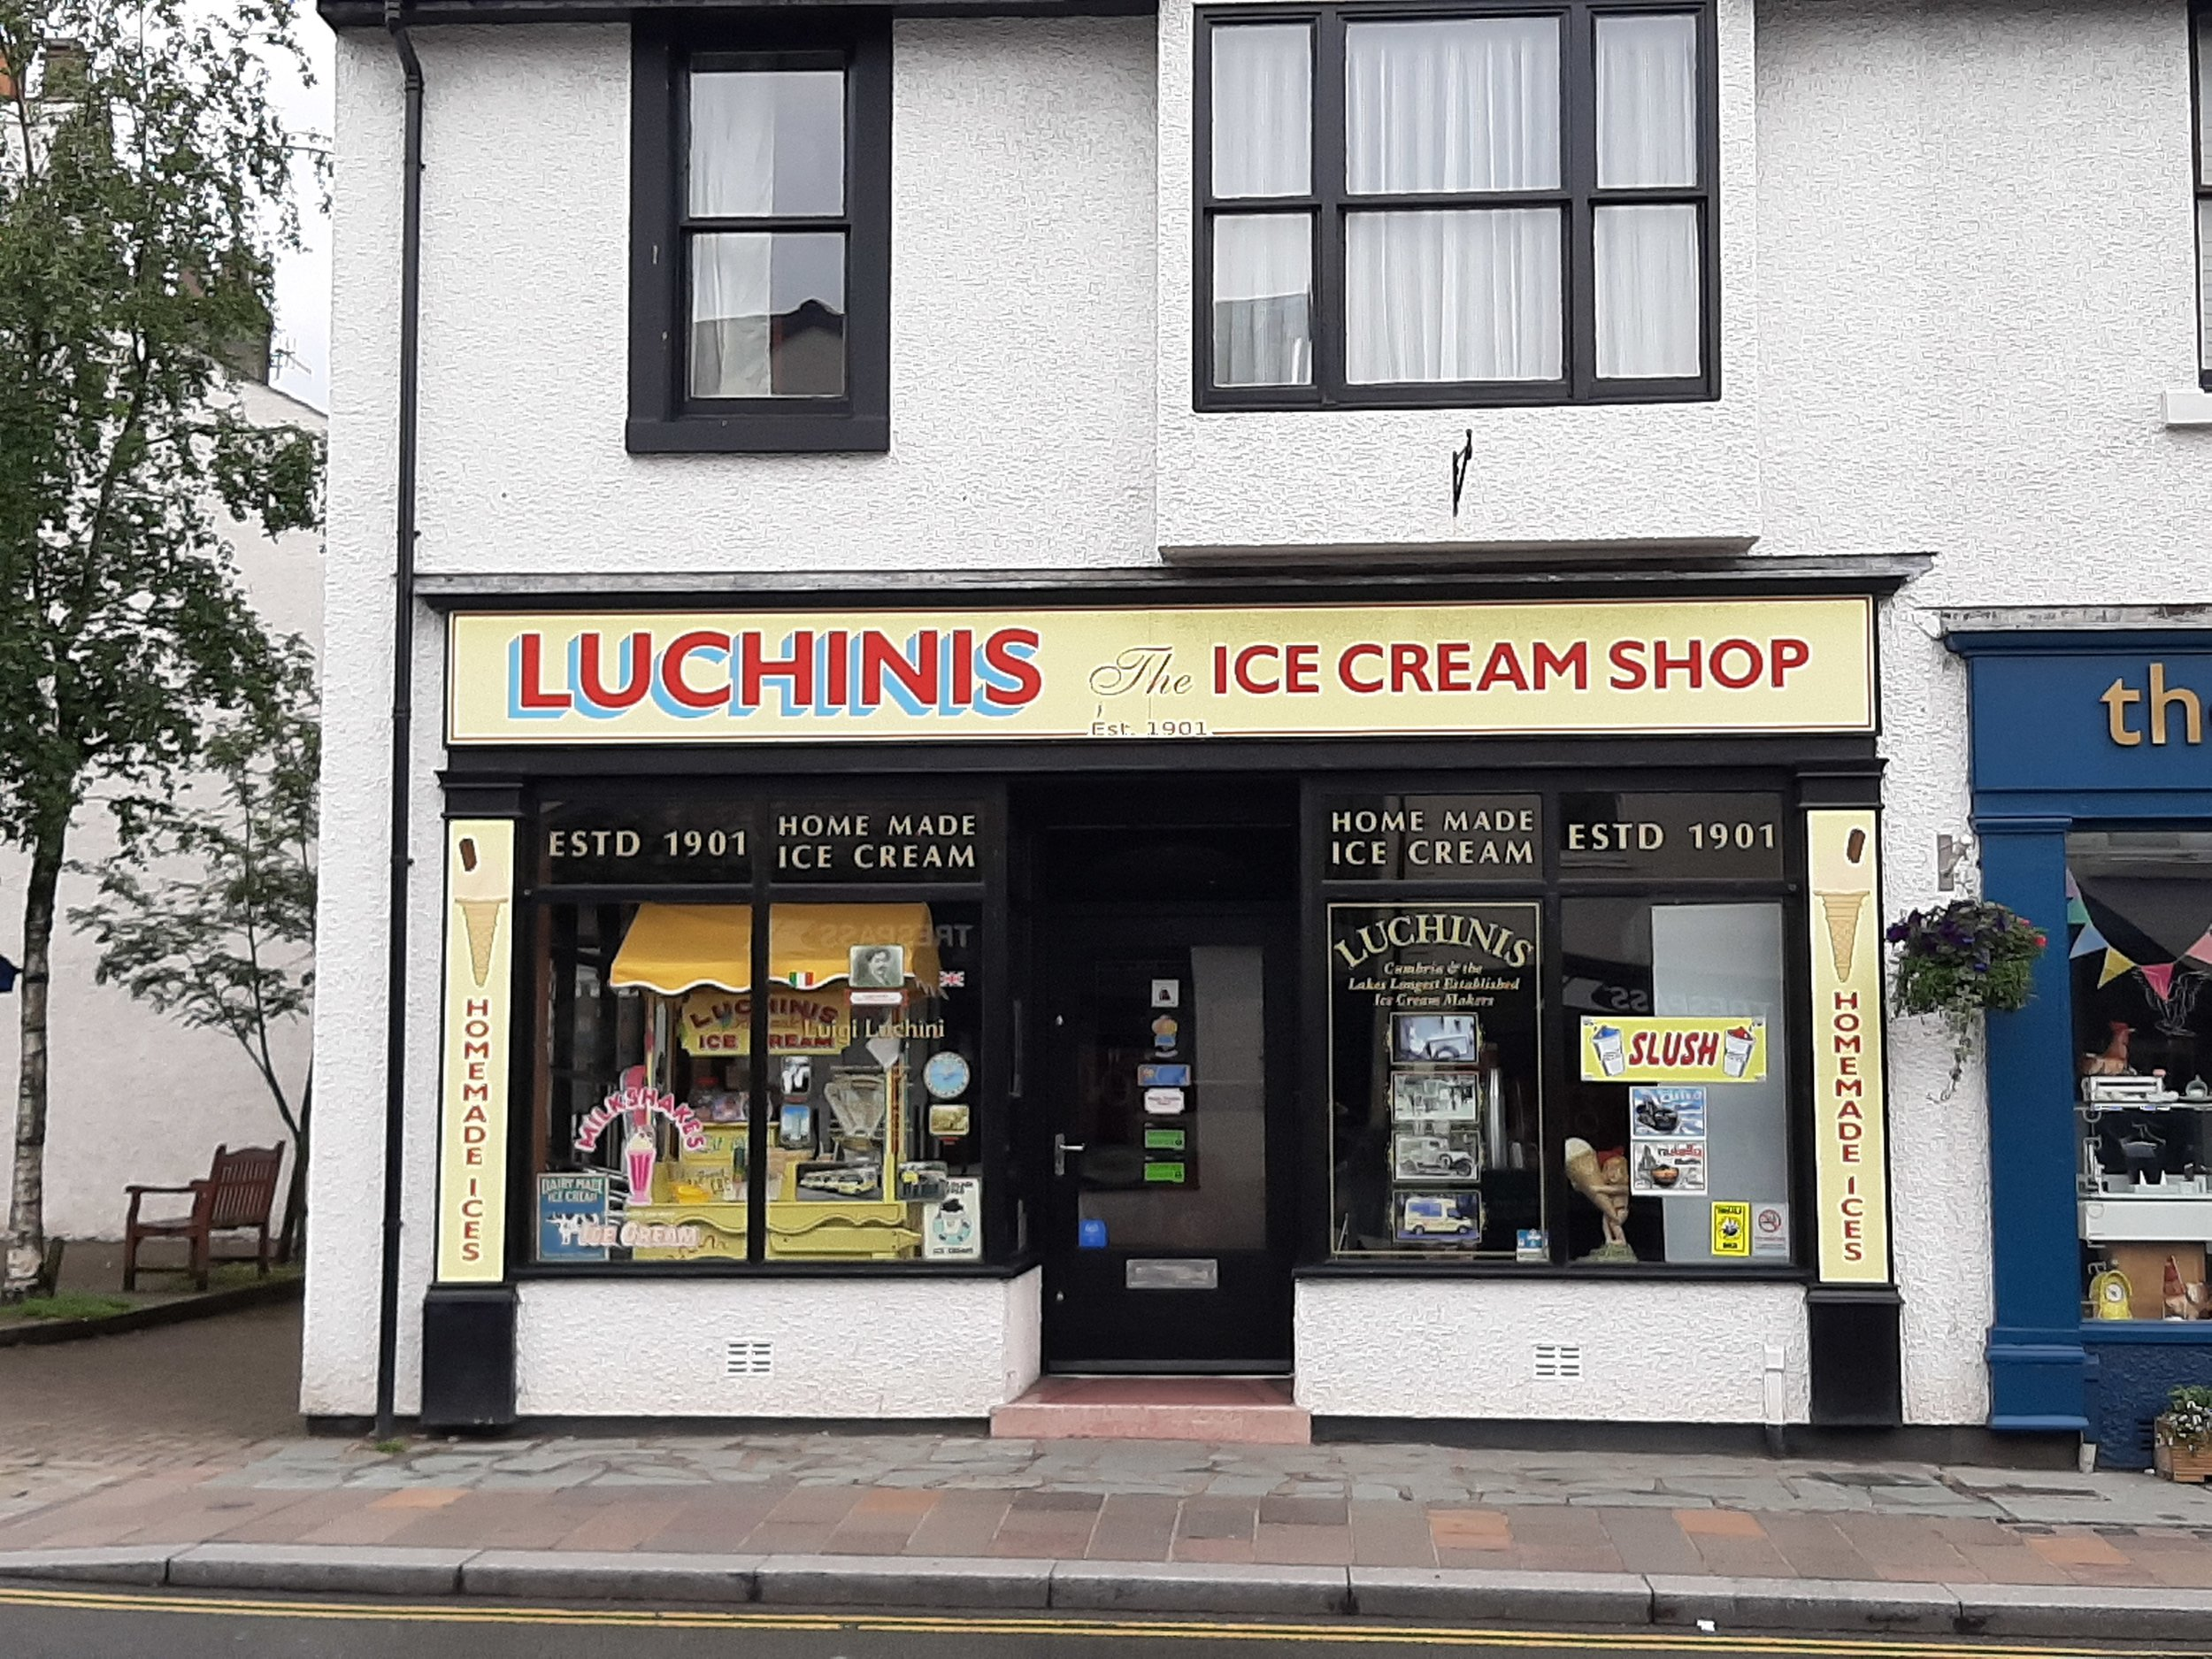 Luchini   Luchini's is the oldest ice-cream manufacturer in Cumbria and the Lake District. We have a traditional Italian ice-cream shop which offers many flavours. You are welcome to enjoy our sundaes, hot waffles, delicious milkshakes, slush drinks, tea, coffee and much more. Now in its fourth generation, we are very proud to be serving ice-cream using grandfather Luigi's original recipe and locally sourced quality ingredients.  1 Tithebarn Street, Keswick, CA12 5ED  017687 73668